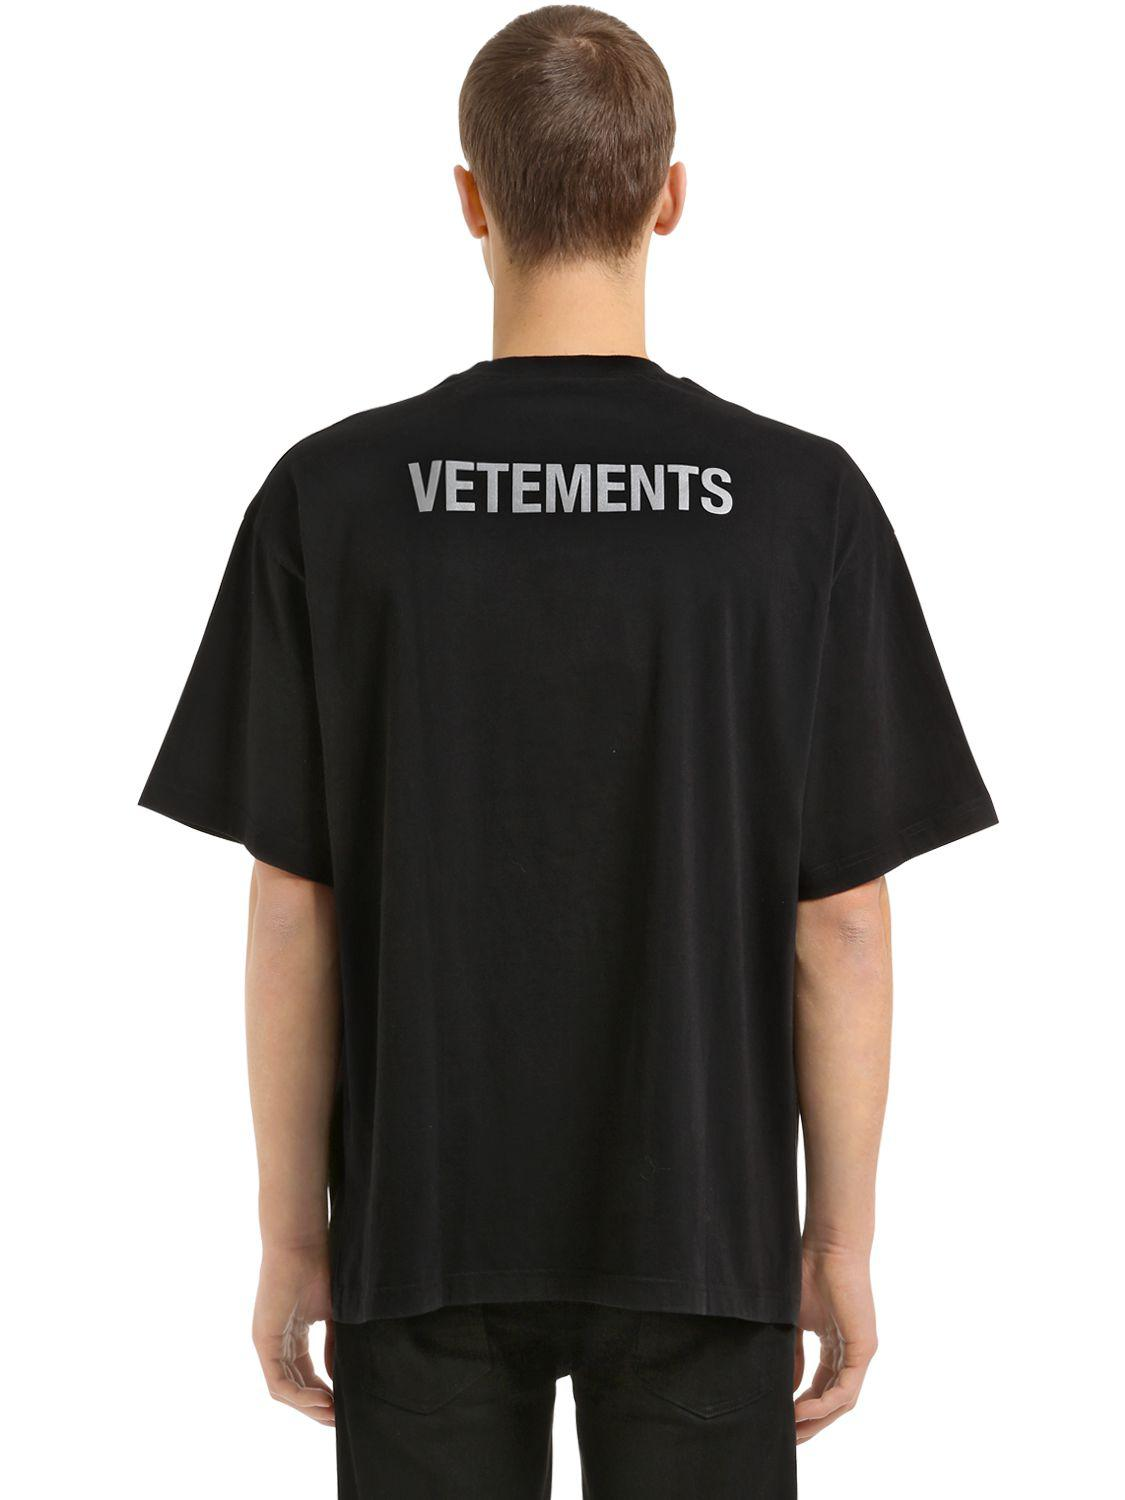 vetements oversize reflective staff jersey t shirt in. Black Bedroom Furniture Sets. Home Design Ideas